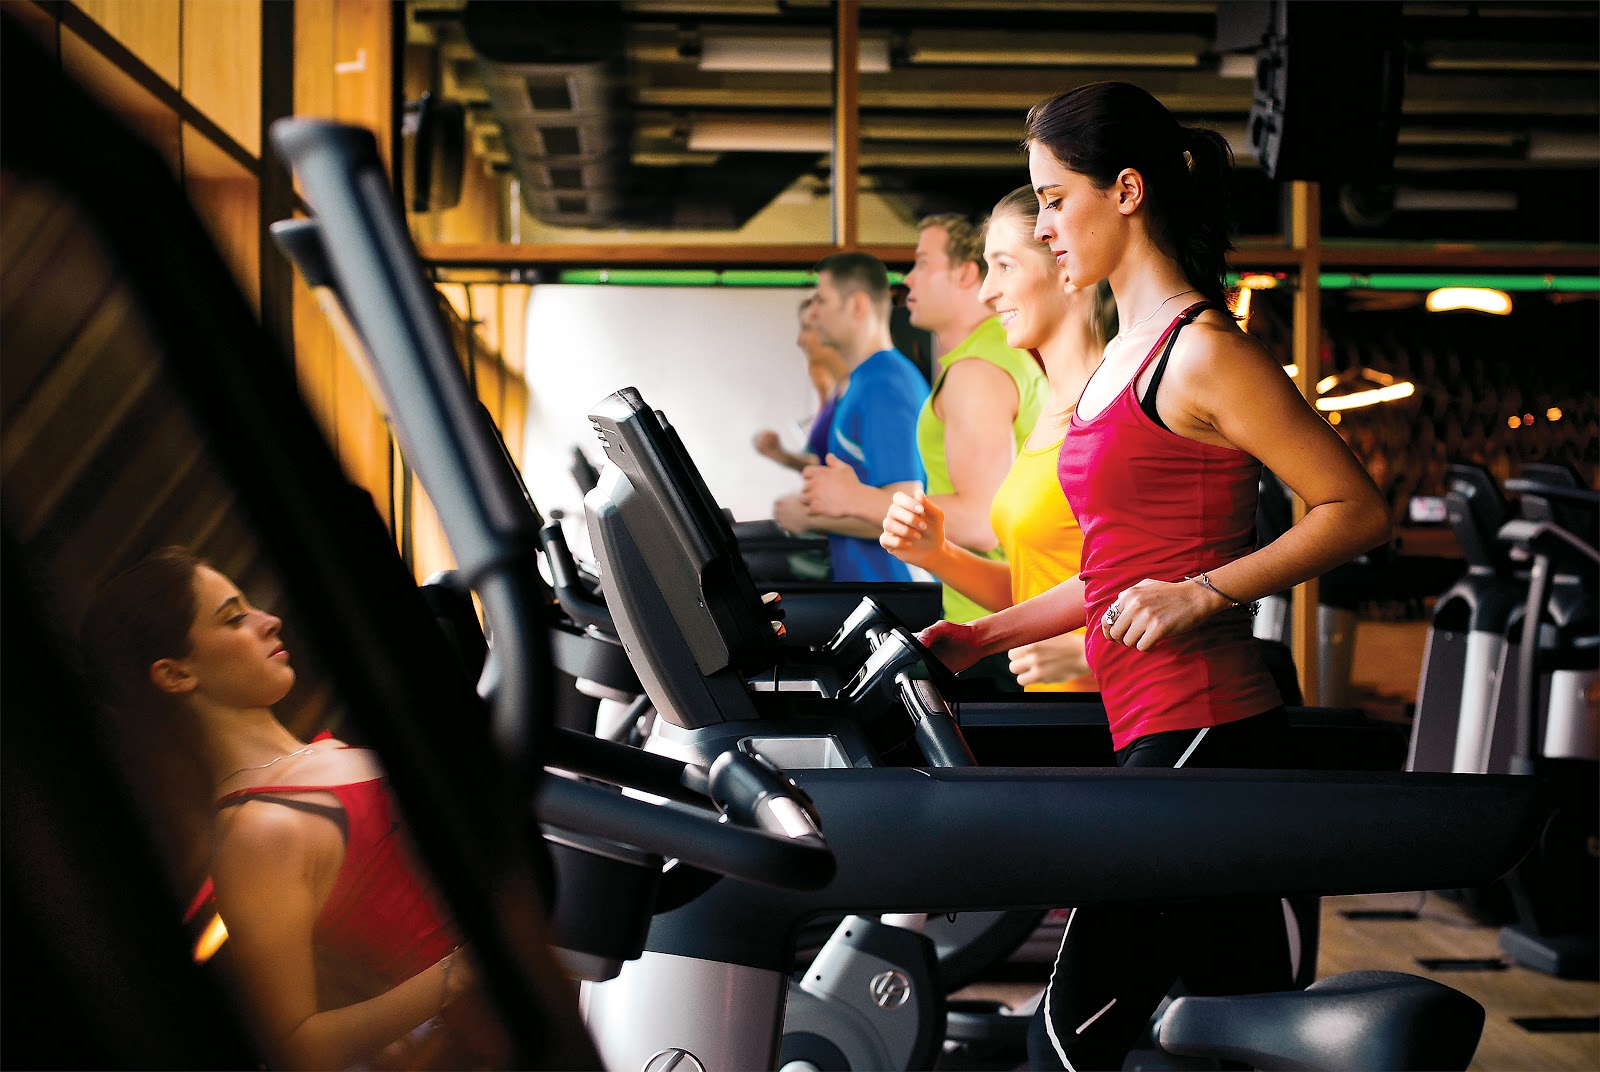 Life Fitness Treadmill Workout